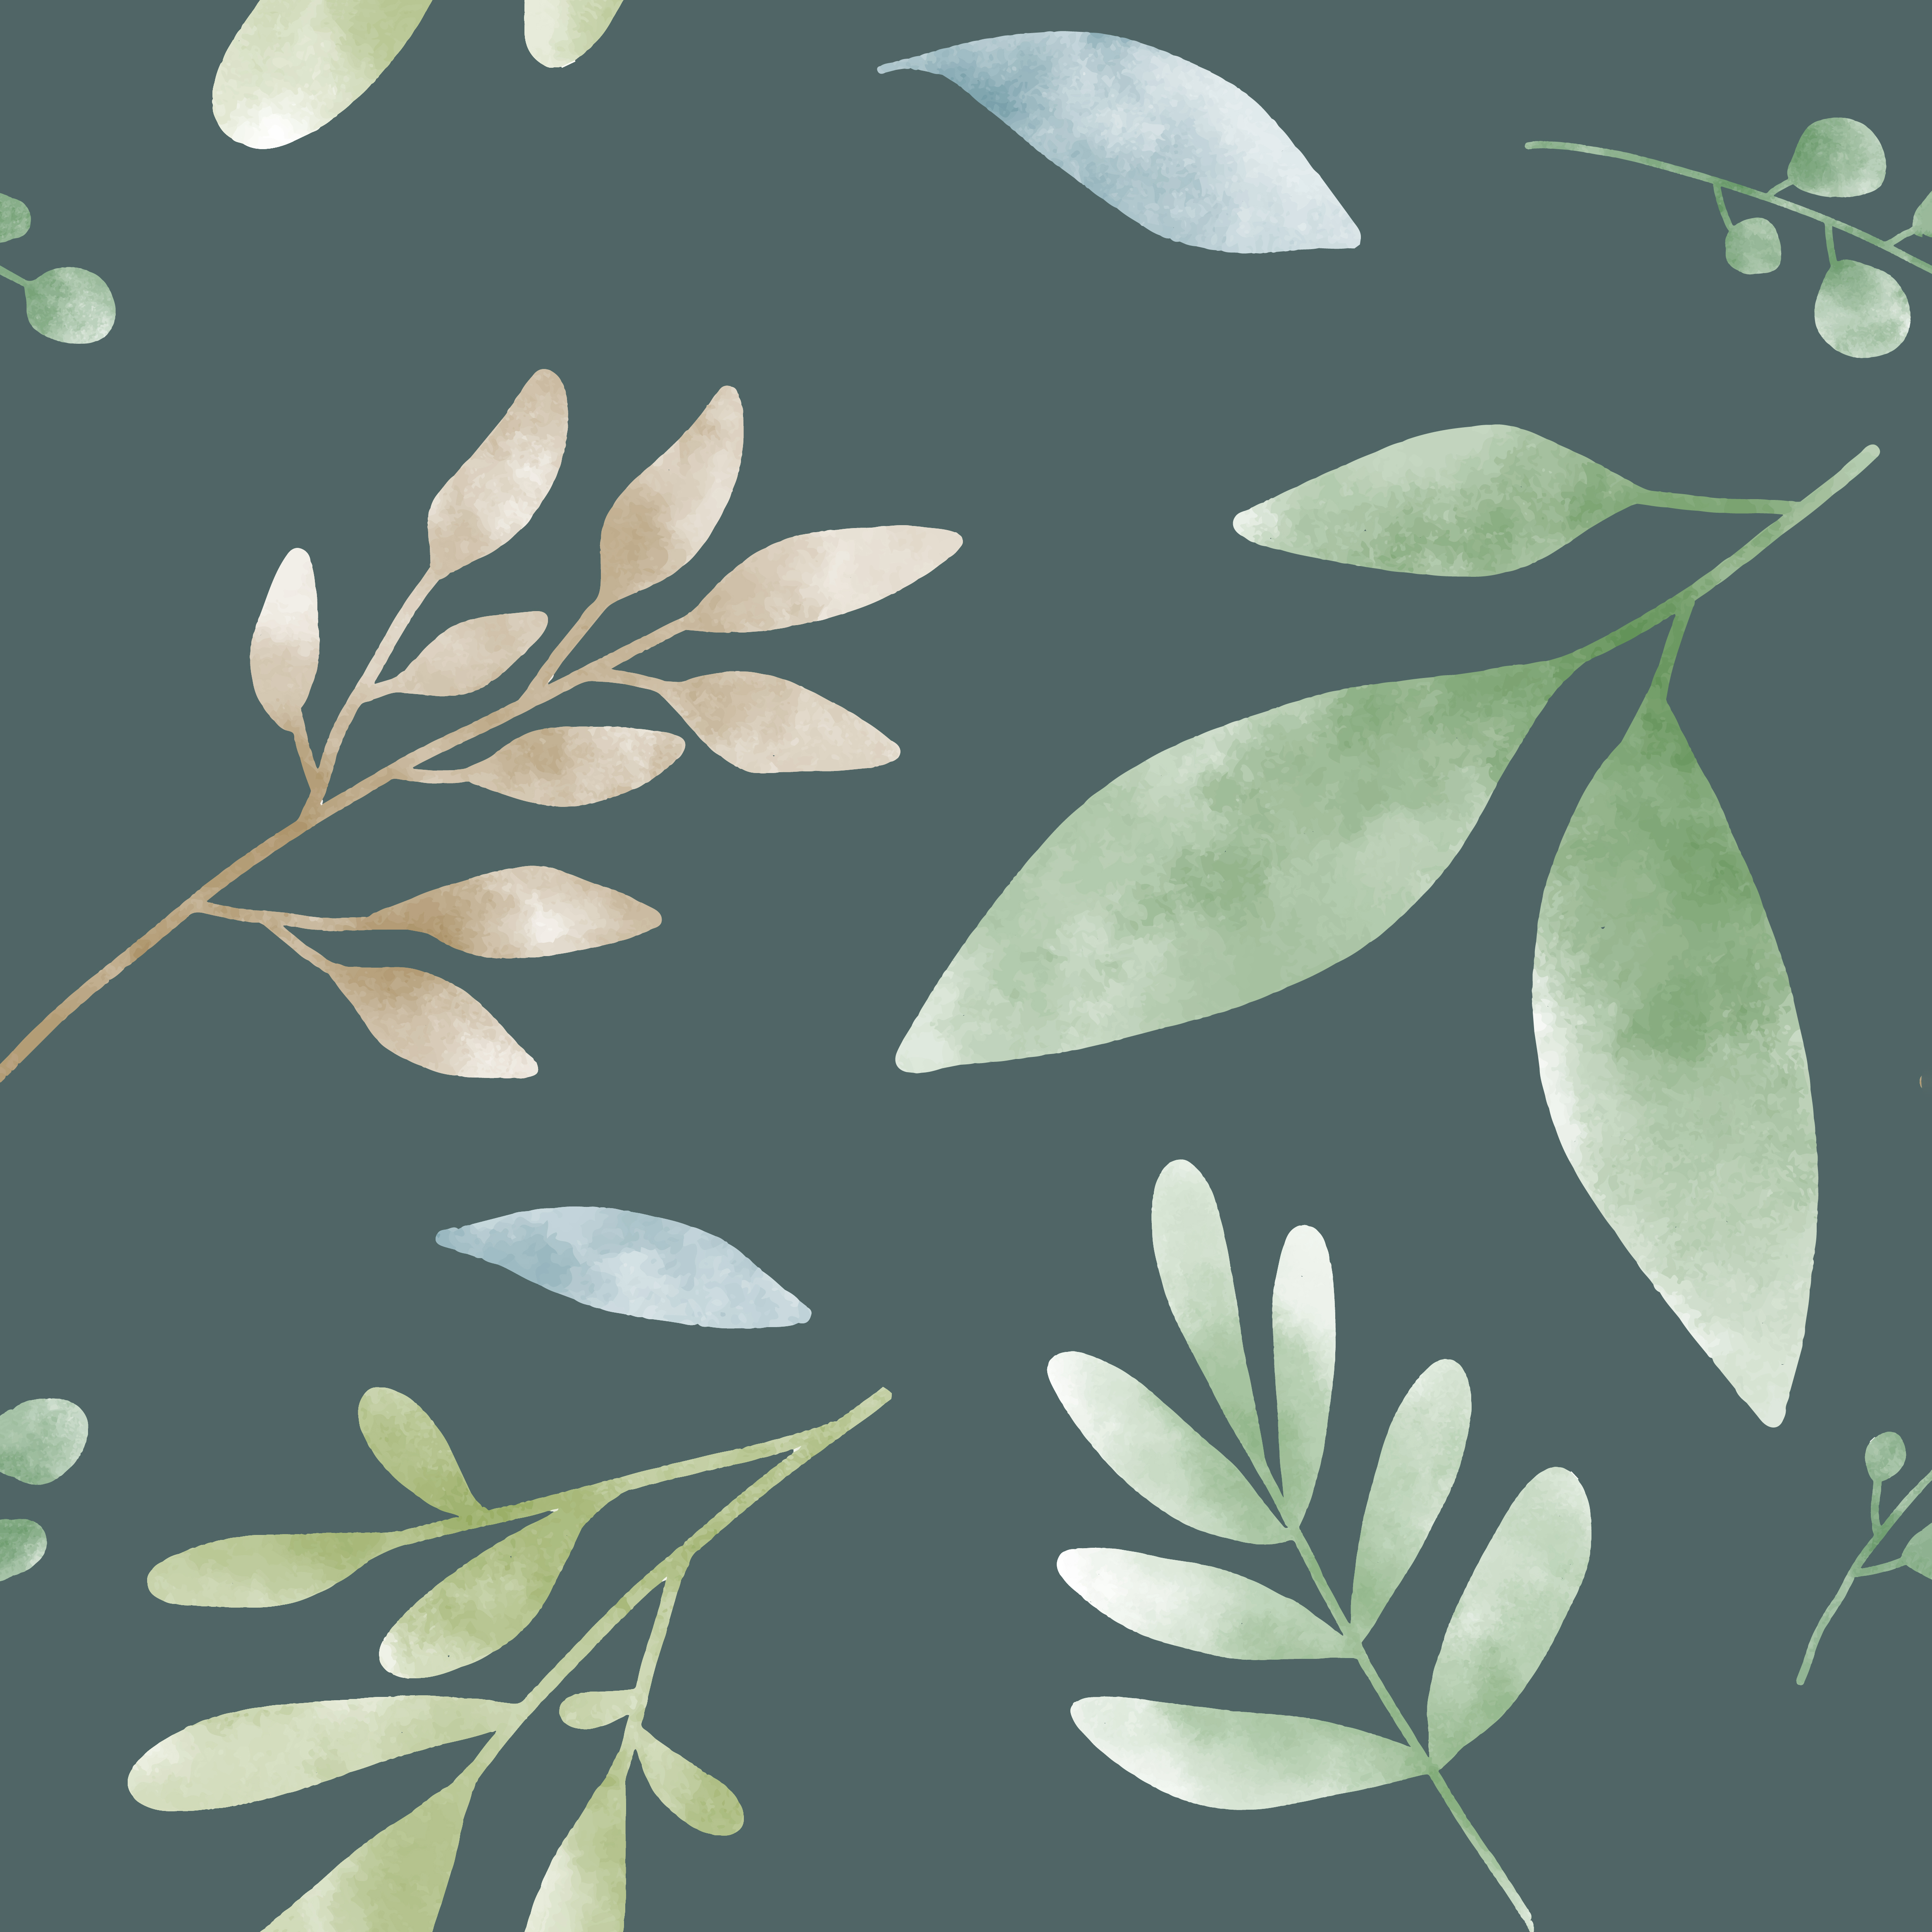 Watercolor Green Leaf Patterns Vector Download Free